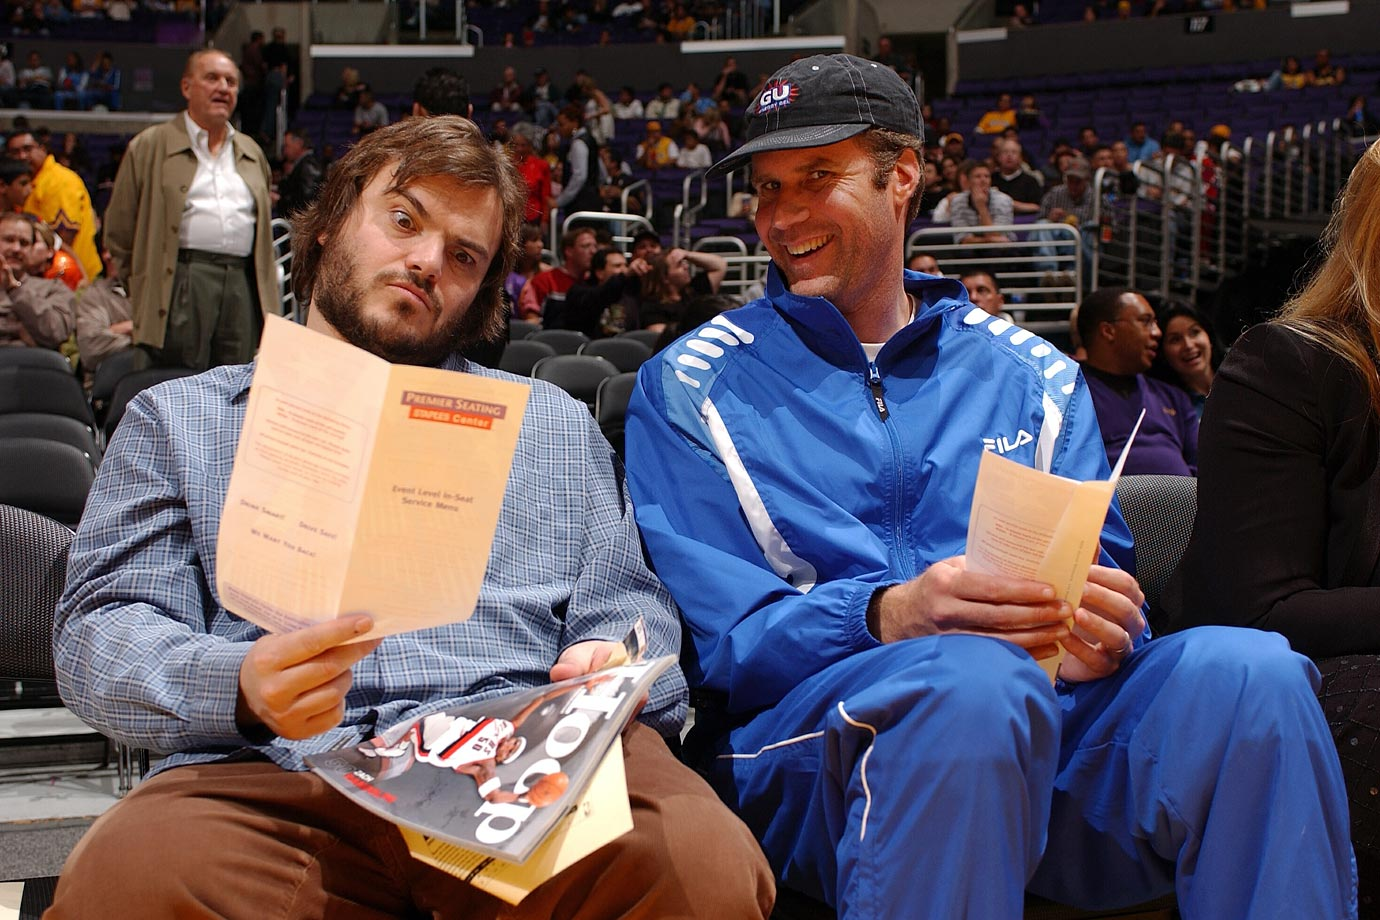 Jack Black and Will Ferrell attend the Los Angeles Lakers game against the Portland Trail Blazers on Feb. 17, 2004 at Staples Center in Los Angeles.